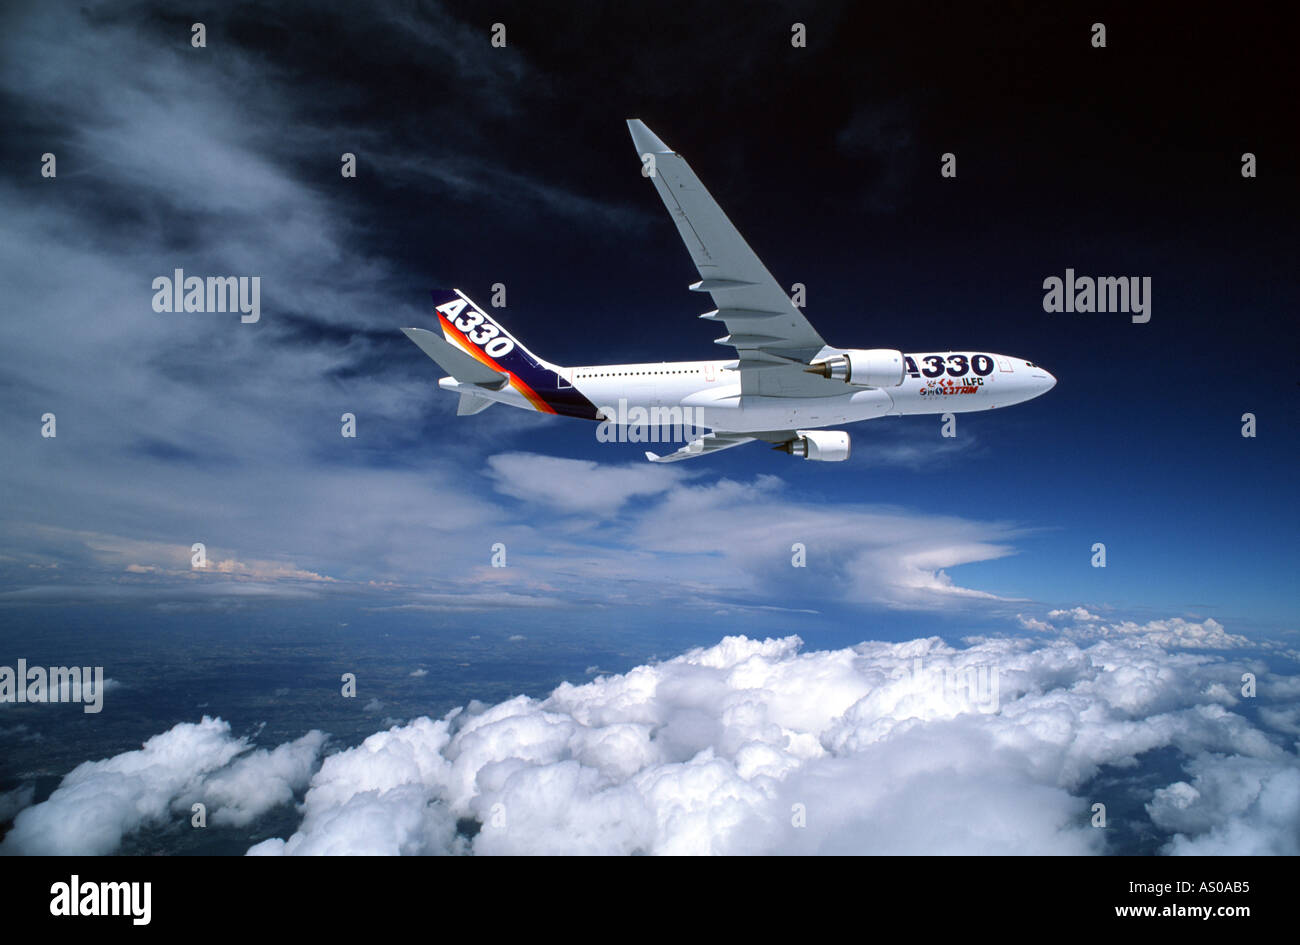 passenger aircraft in flight Airbus A330 flying above cloud - Stock Image